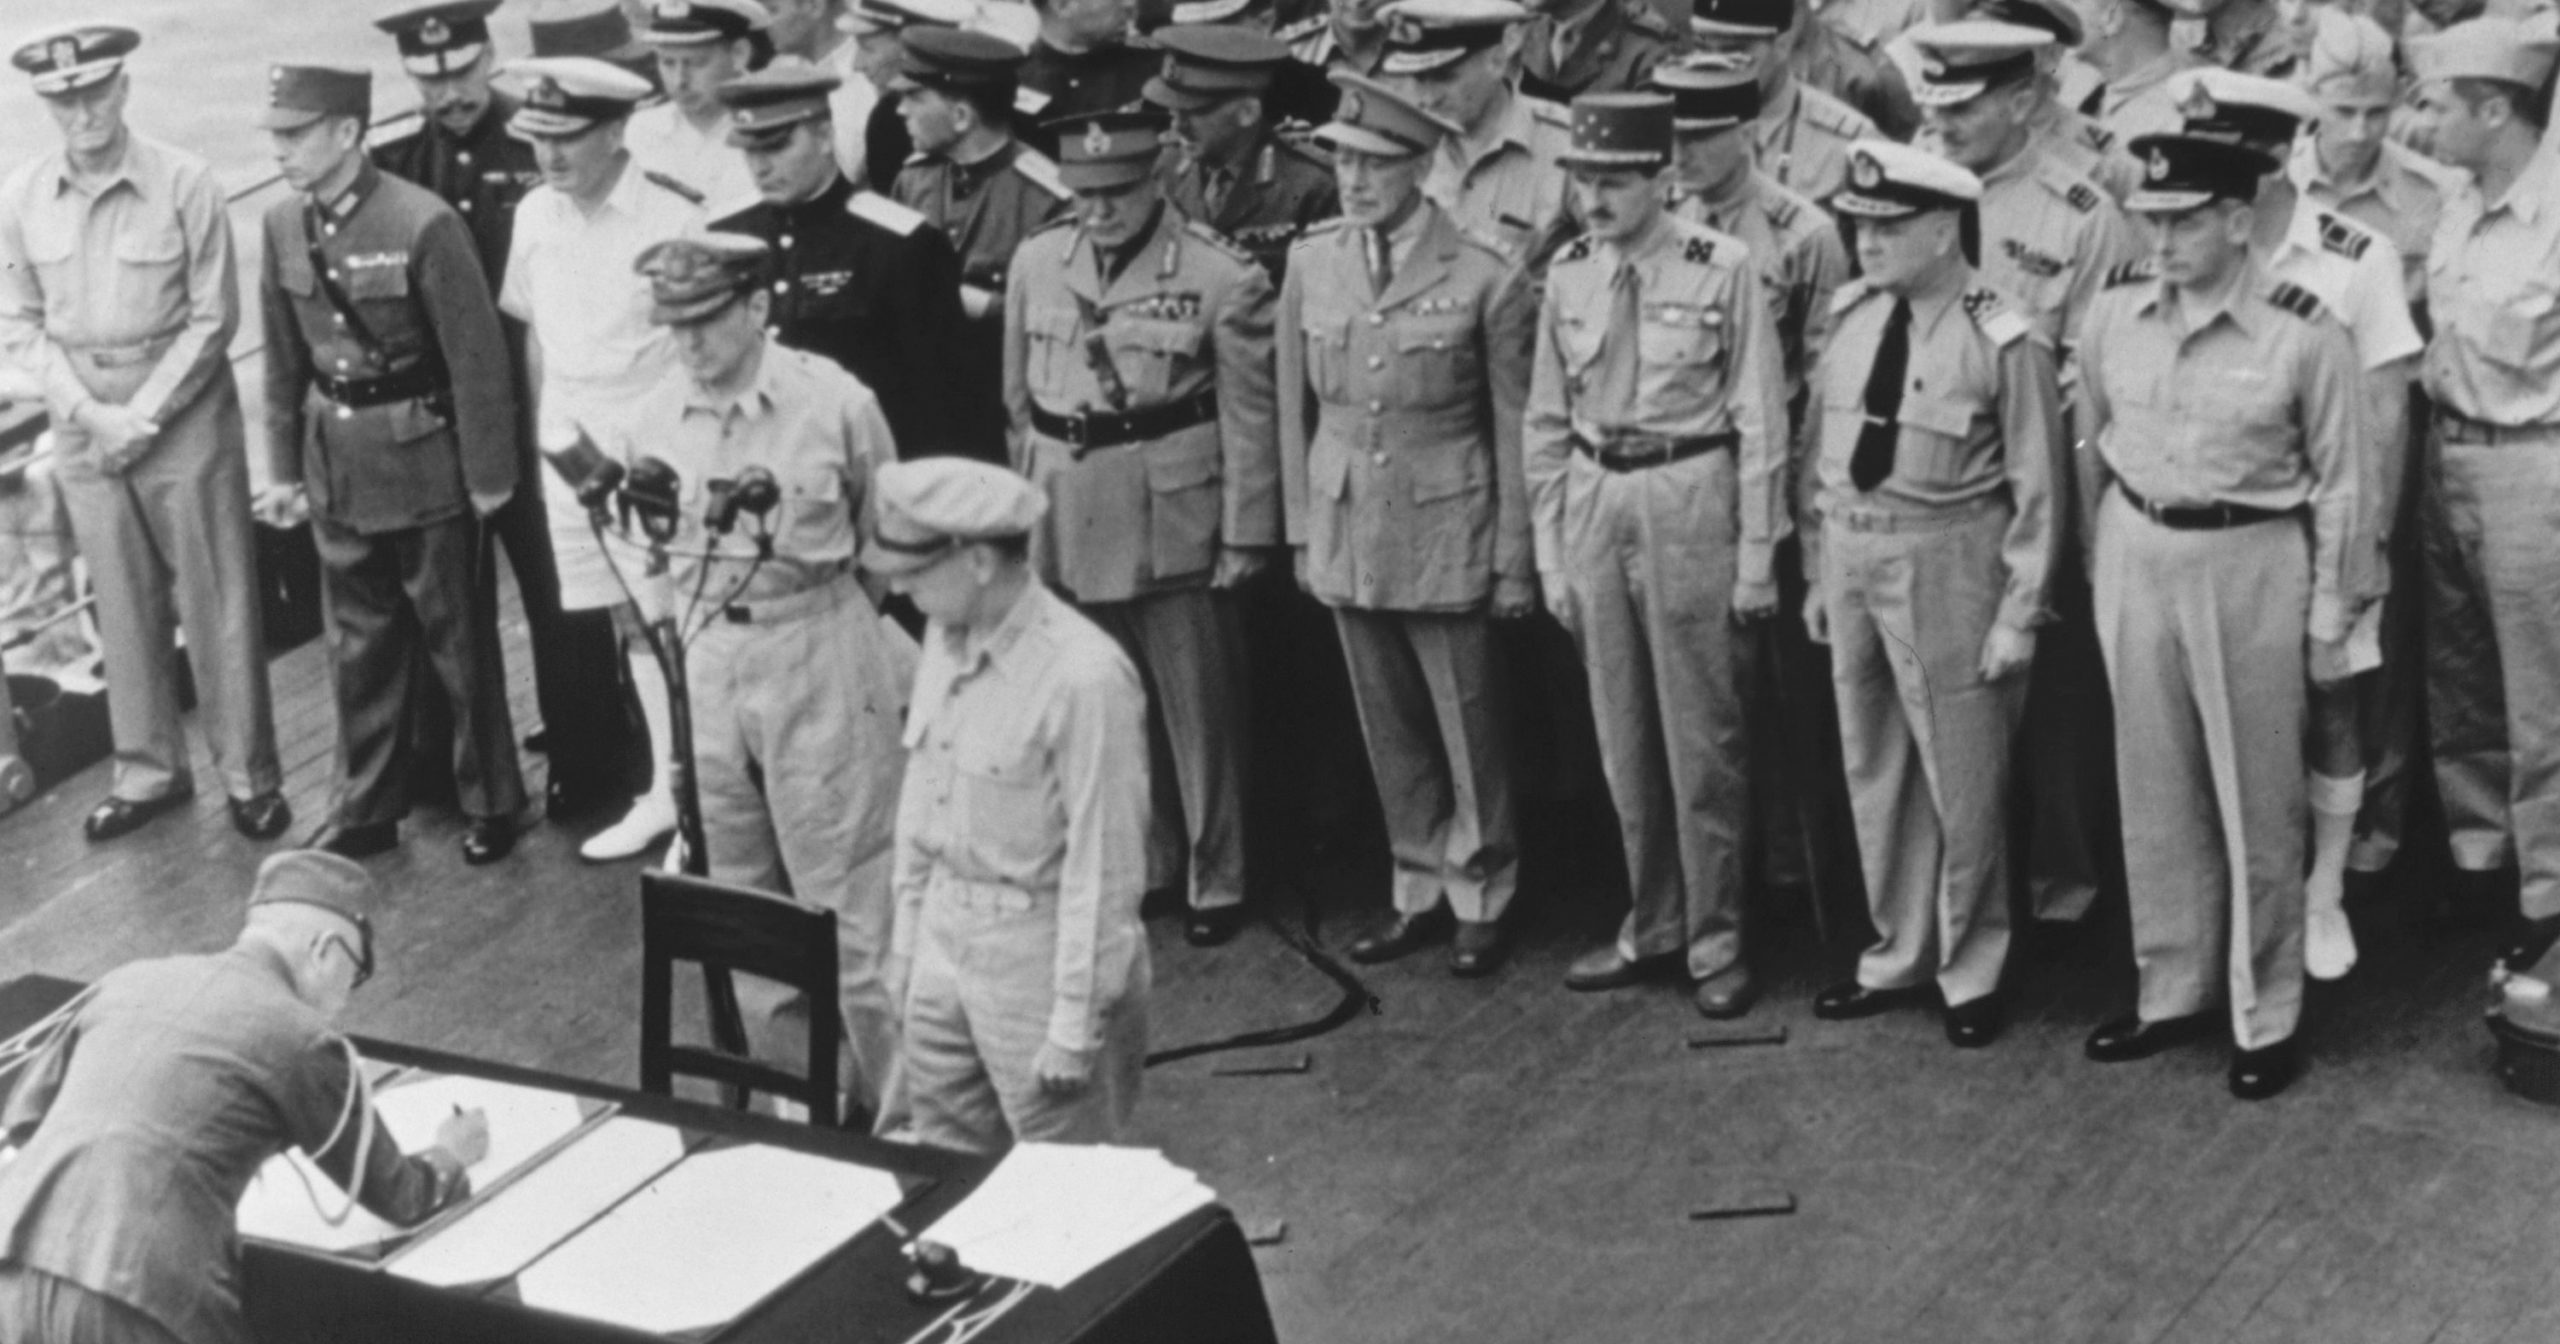 Gen. Douglas MacArthur, Supreme Allied Commander, and Gen. Wainwright witness the formal Japanese surrender aboard the USS Missouri in Tokyo Bay on Sept. 2, 1945. Several dozen U.S. veterans will gather on the battleship in Pearl Harbor in September to mark the 75th anniversary of Japan's surrender.